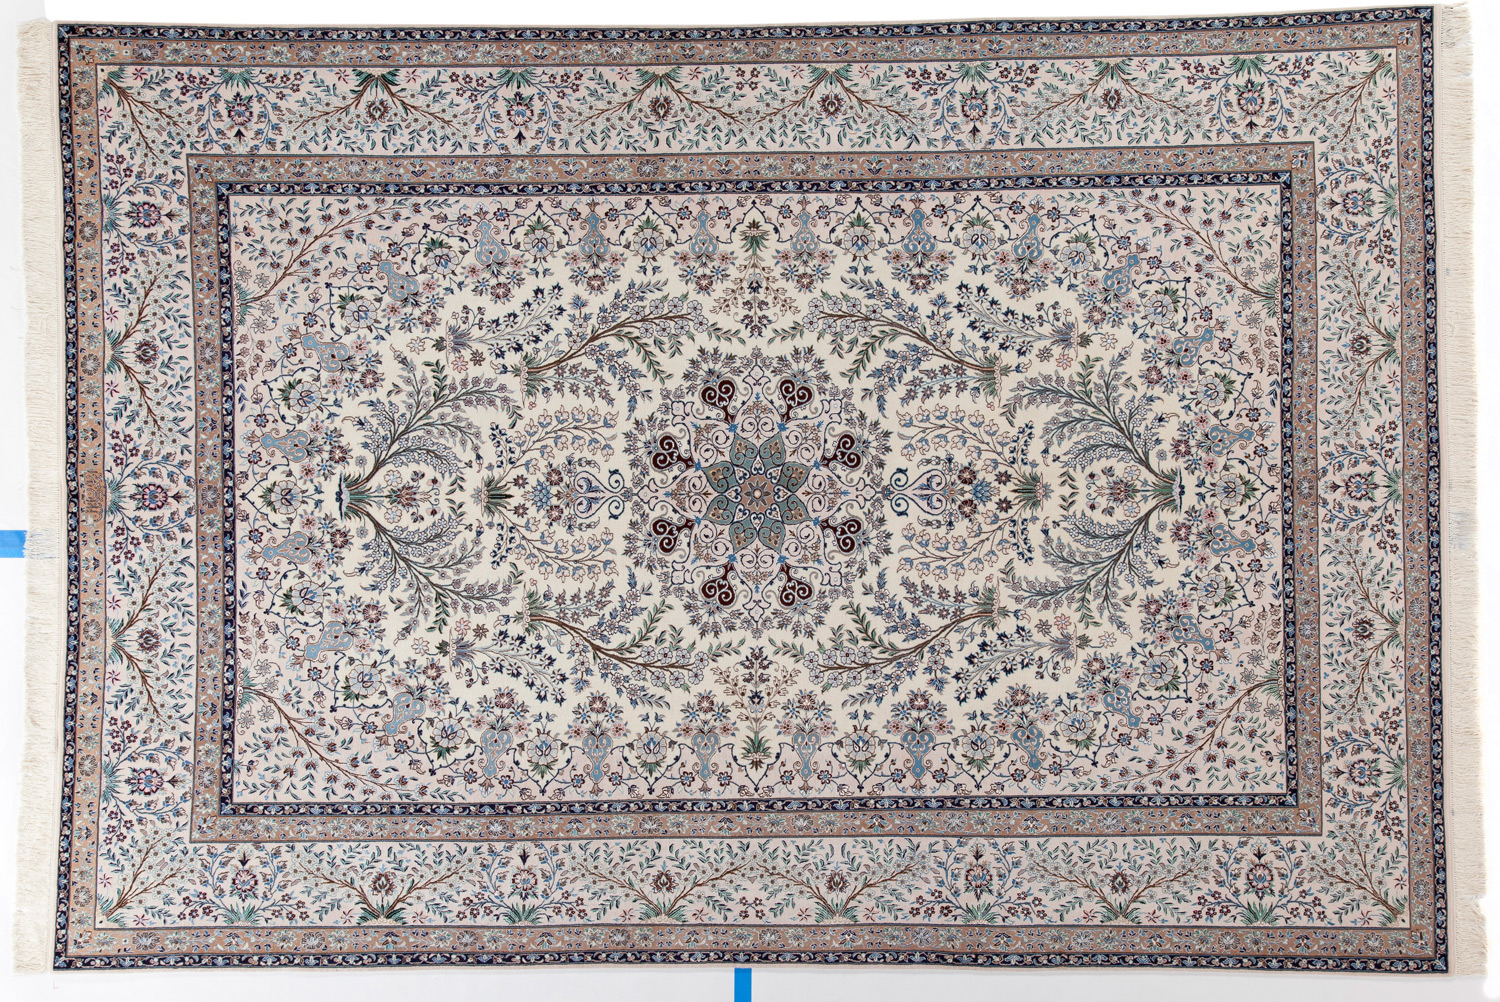 Wool/Silk Persian Rug